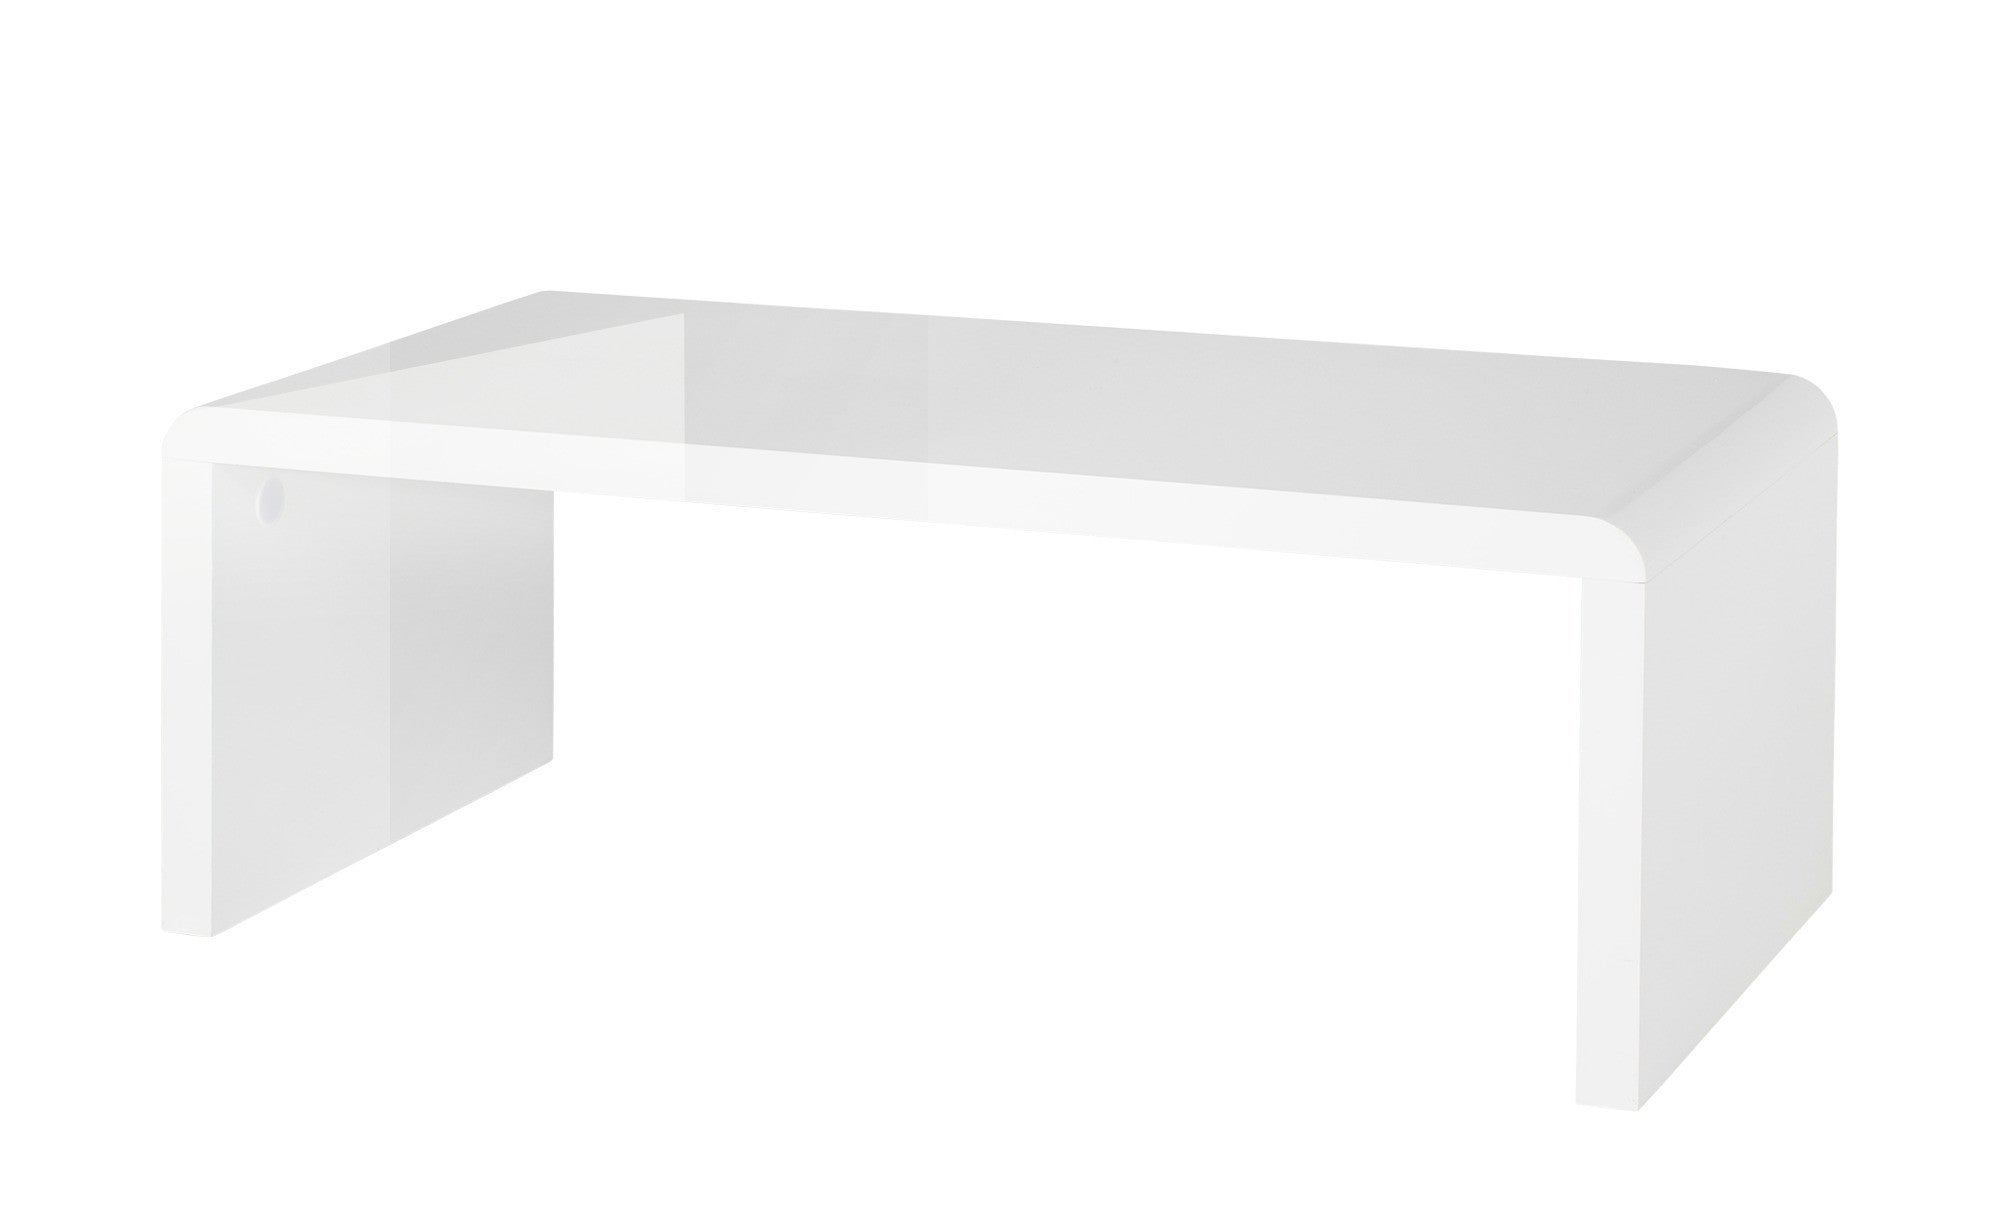 Prana Coffee table with round corners white high gloss finish